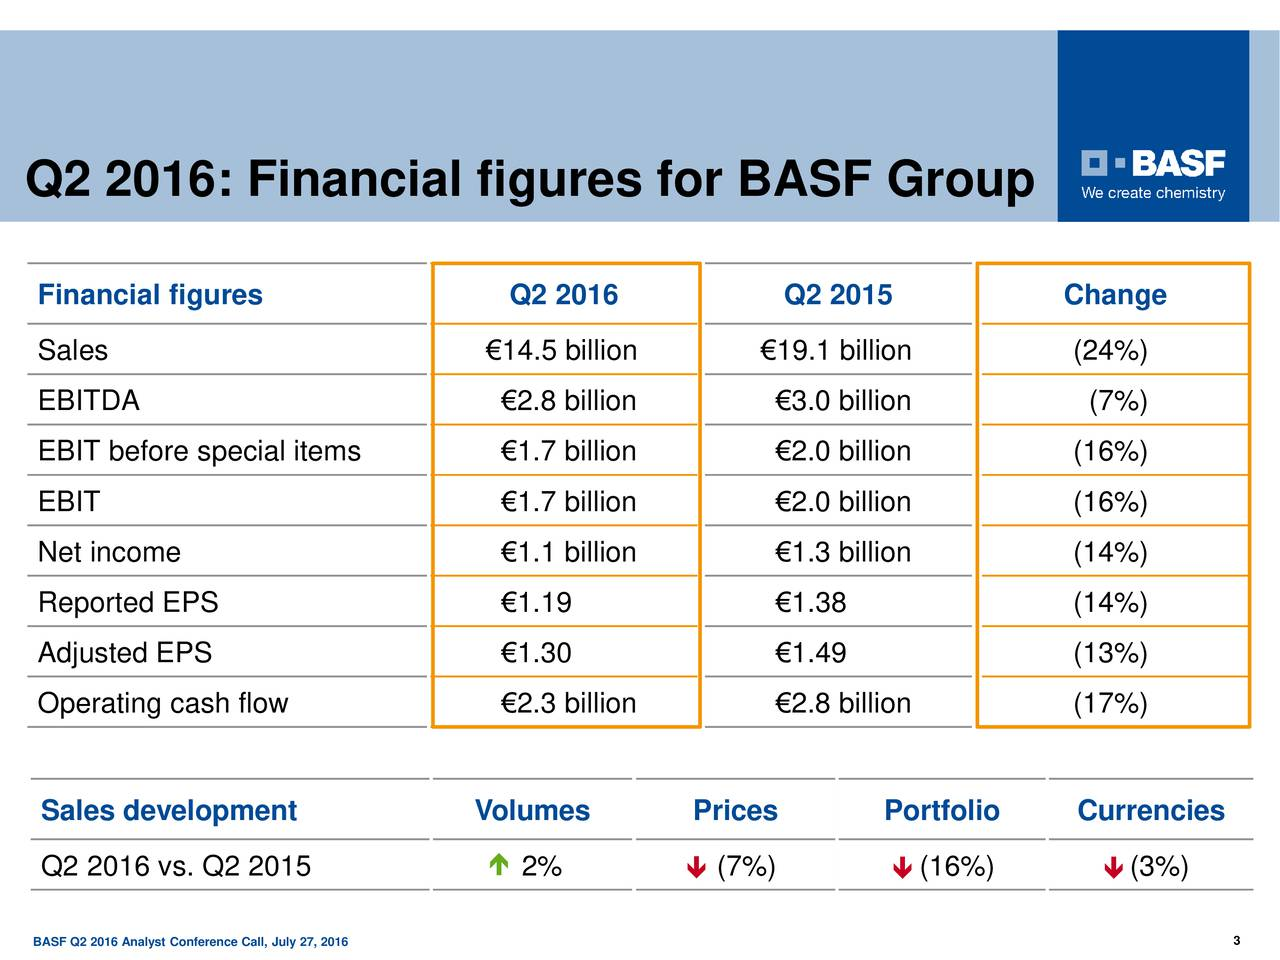 Q2 2016: Financial figures for BASF Group Financial figures Q2 2016 Q2 2015 Change Sales 14.5 billion 19.1 billion (24%) EBITDA 2.8 billion 3.0 billion (7%) EBIT before special items 1.7 billion 2.0 billion (16%) EBIT 1.7 billion 2.0 billion (16%) Net income 1.1 billion 1.3 billion (14%) Reported EPS 1.19 1.38 (14%) Adjusted EPS 1.30 1.49 (13%) Operating cash flow 2.3 billion 2.8 billion (17%) Sales development Volumes Prices Portfolio Currencies Q2 2016 vs. Q2 2015  2% (7%) (16%) (3%) BASF Q2 2016 Analyst Conference Call, July 27, 2016 3